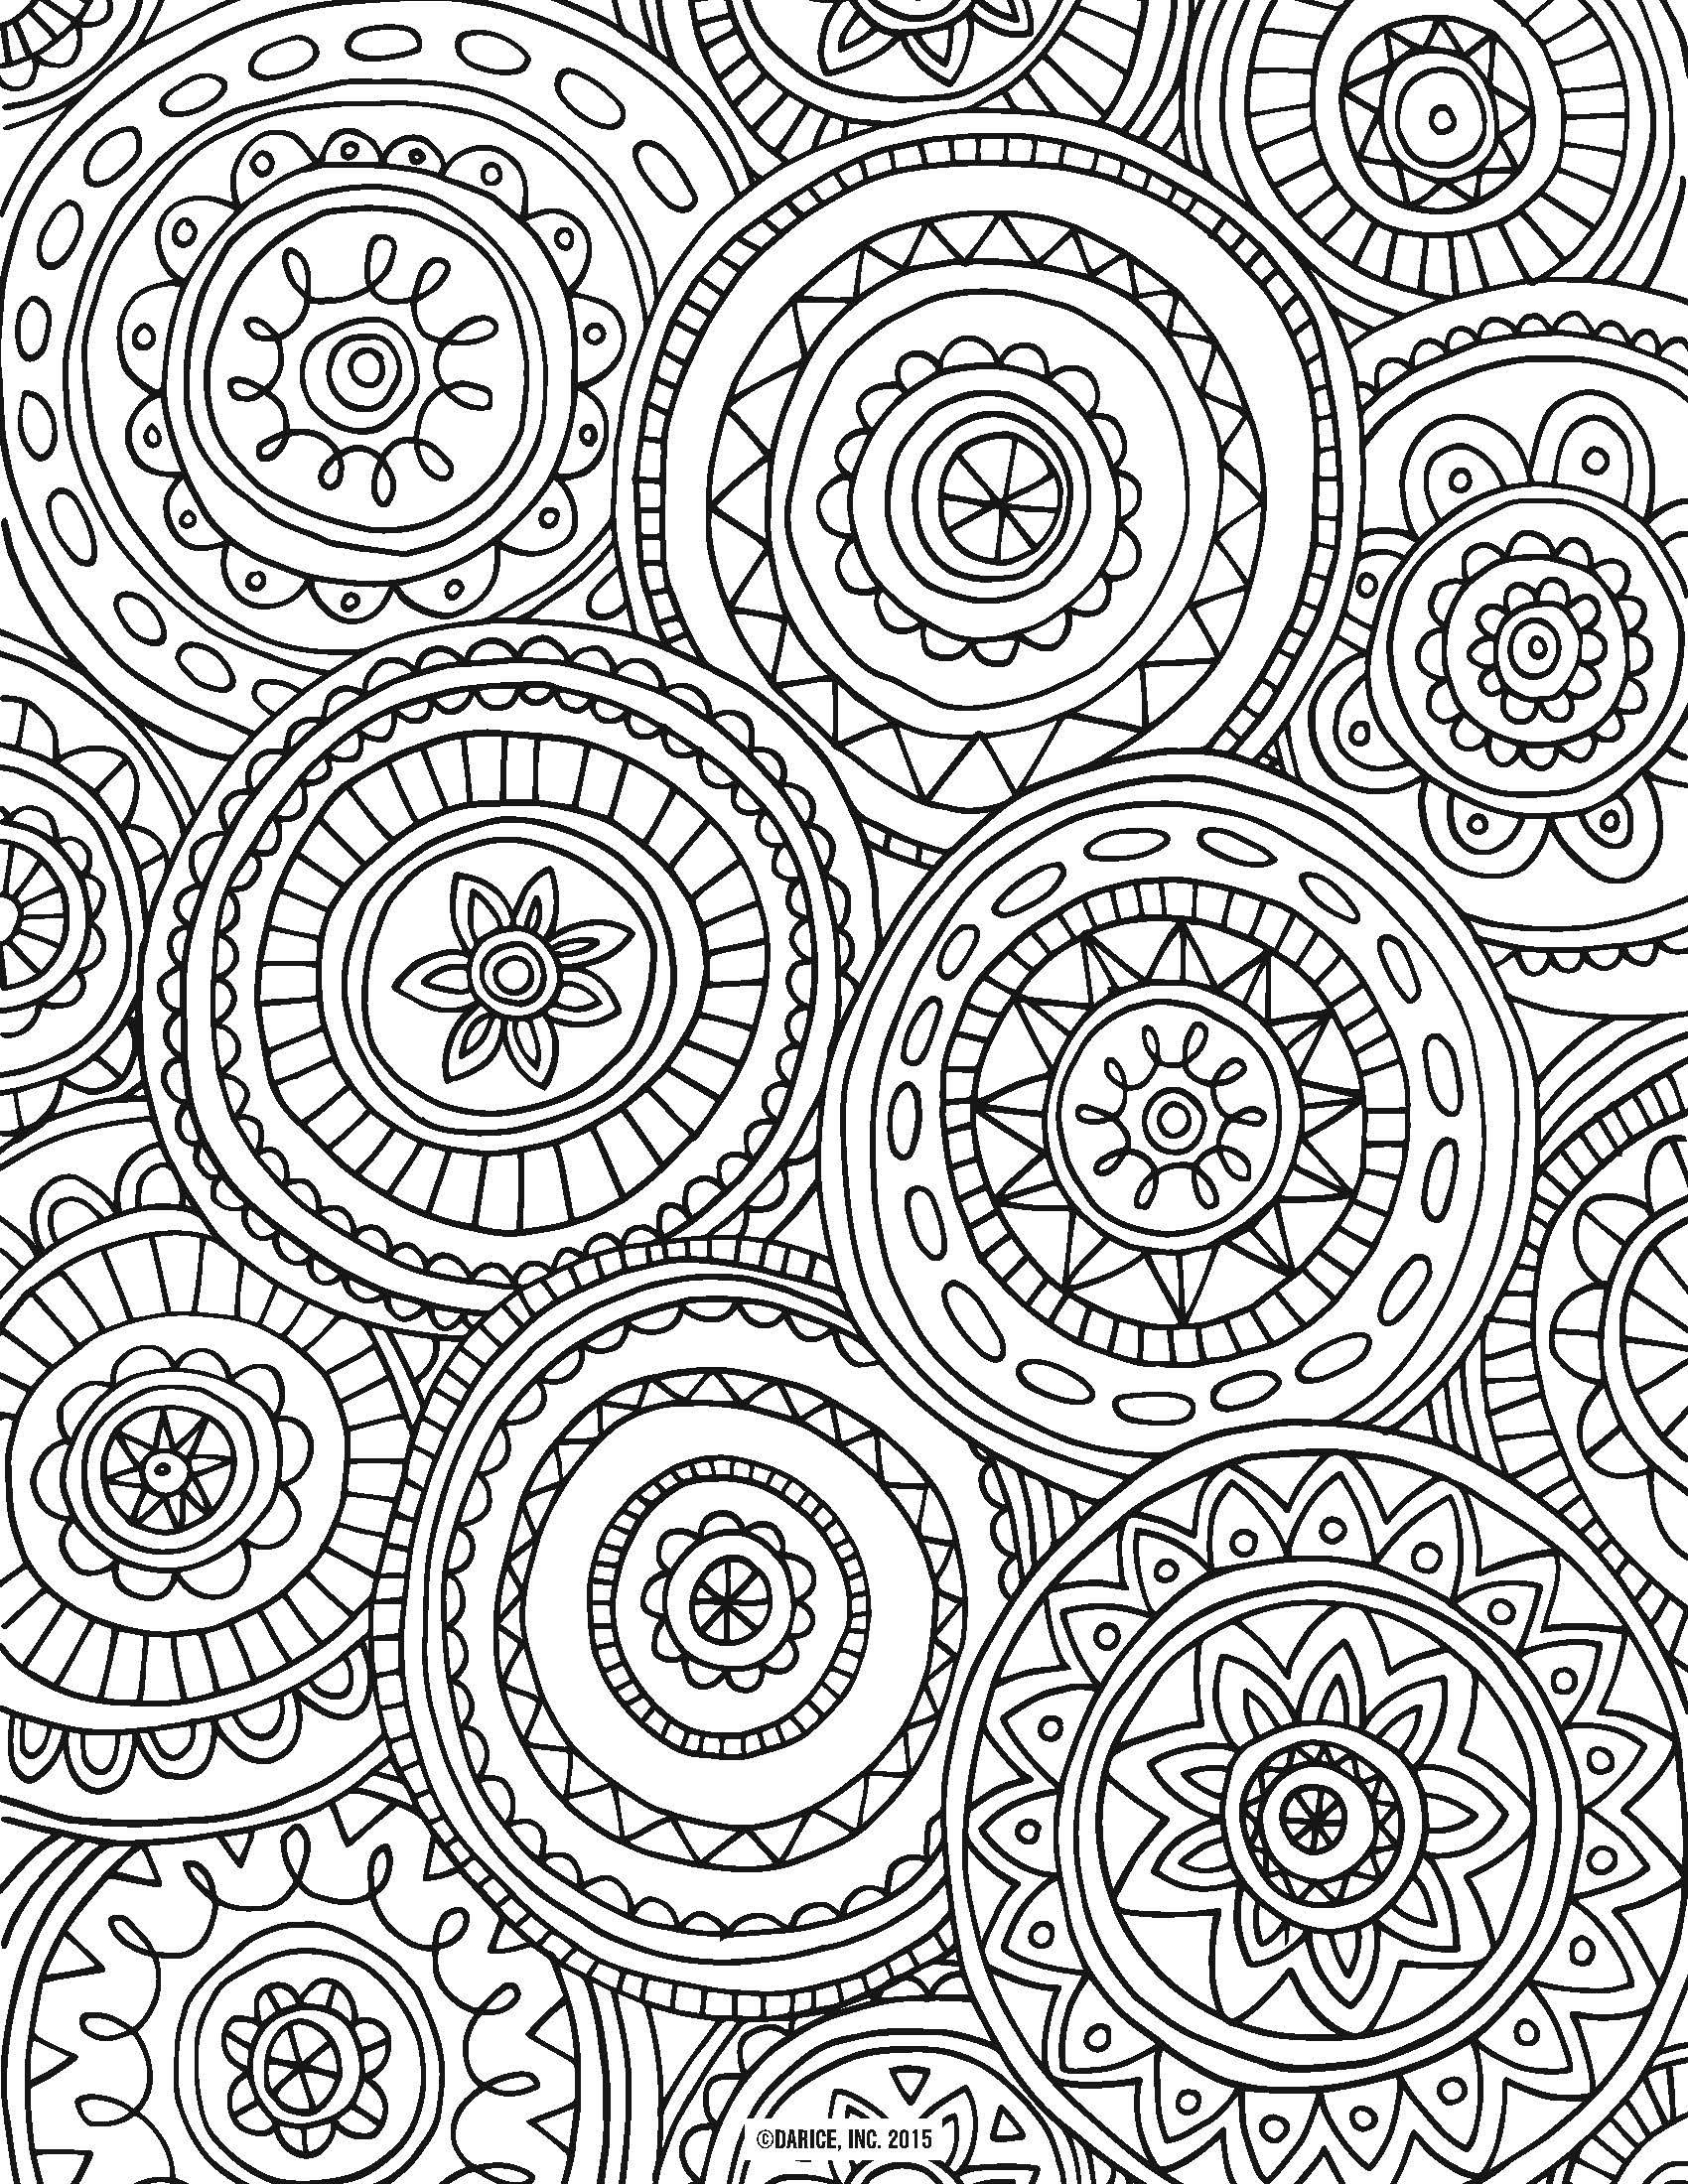 Free coloring pages com printable - Free Coloring Pages Printables